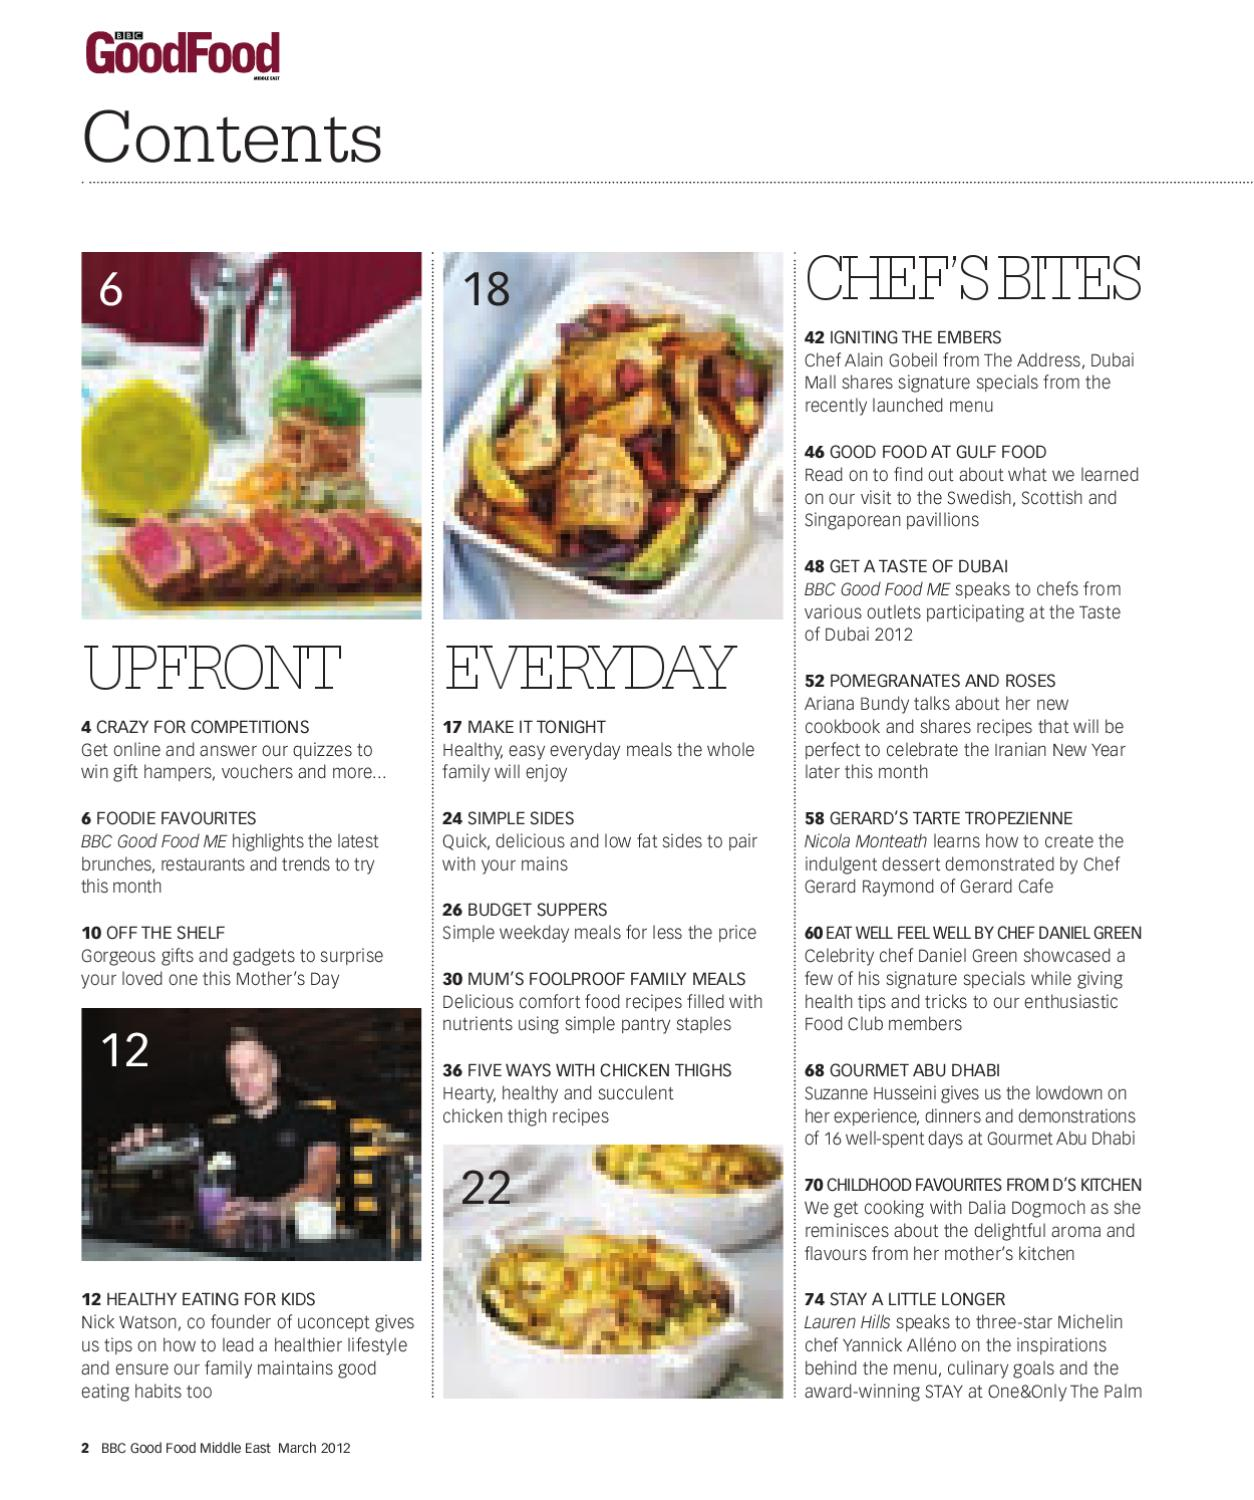 Bbc good food middle east magazine by bbc good food me issuu forumfinder Choice Image